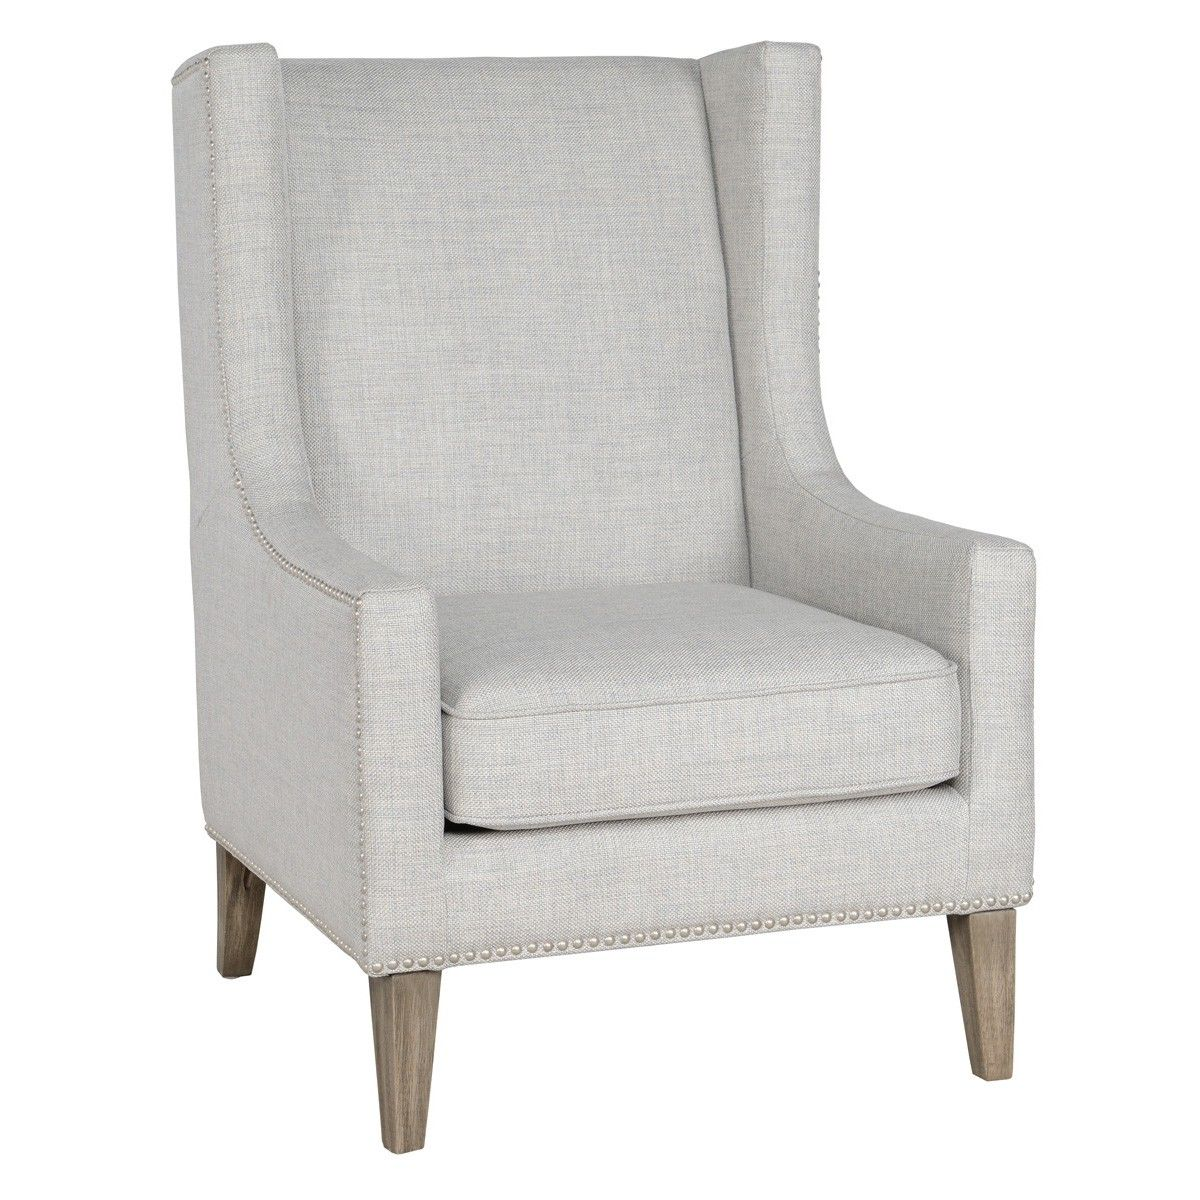 Erie club chair gray accent chairs seating furniture products handcrafted sustainable furnishings